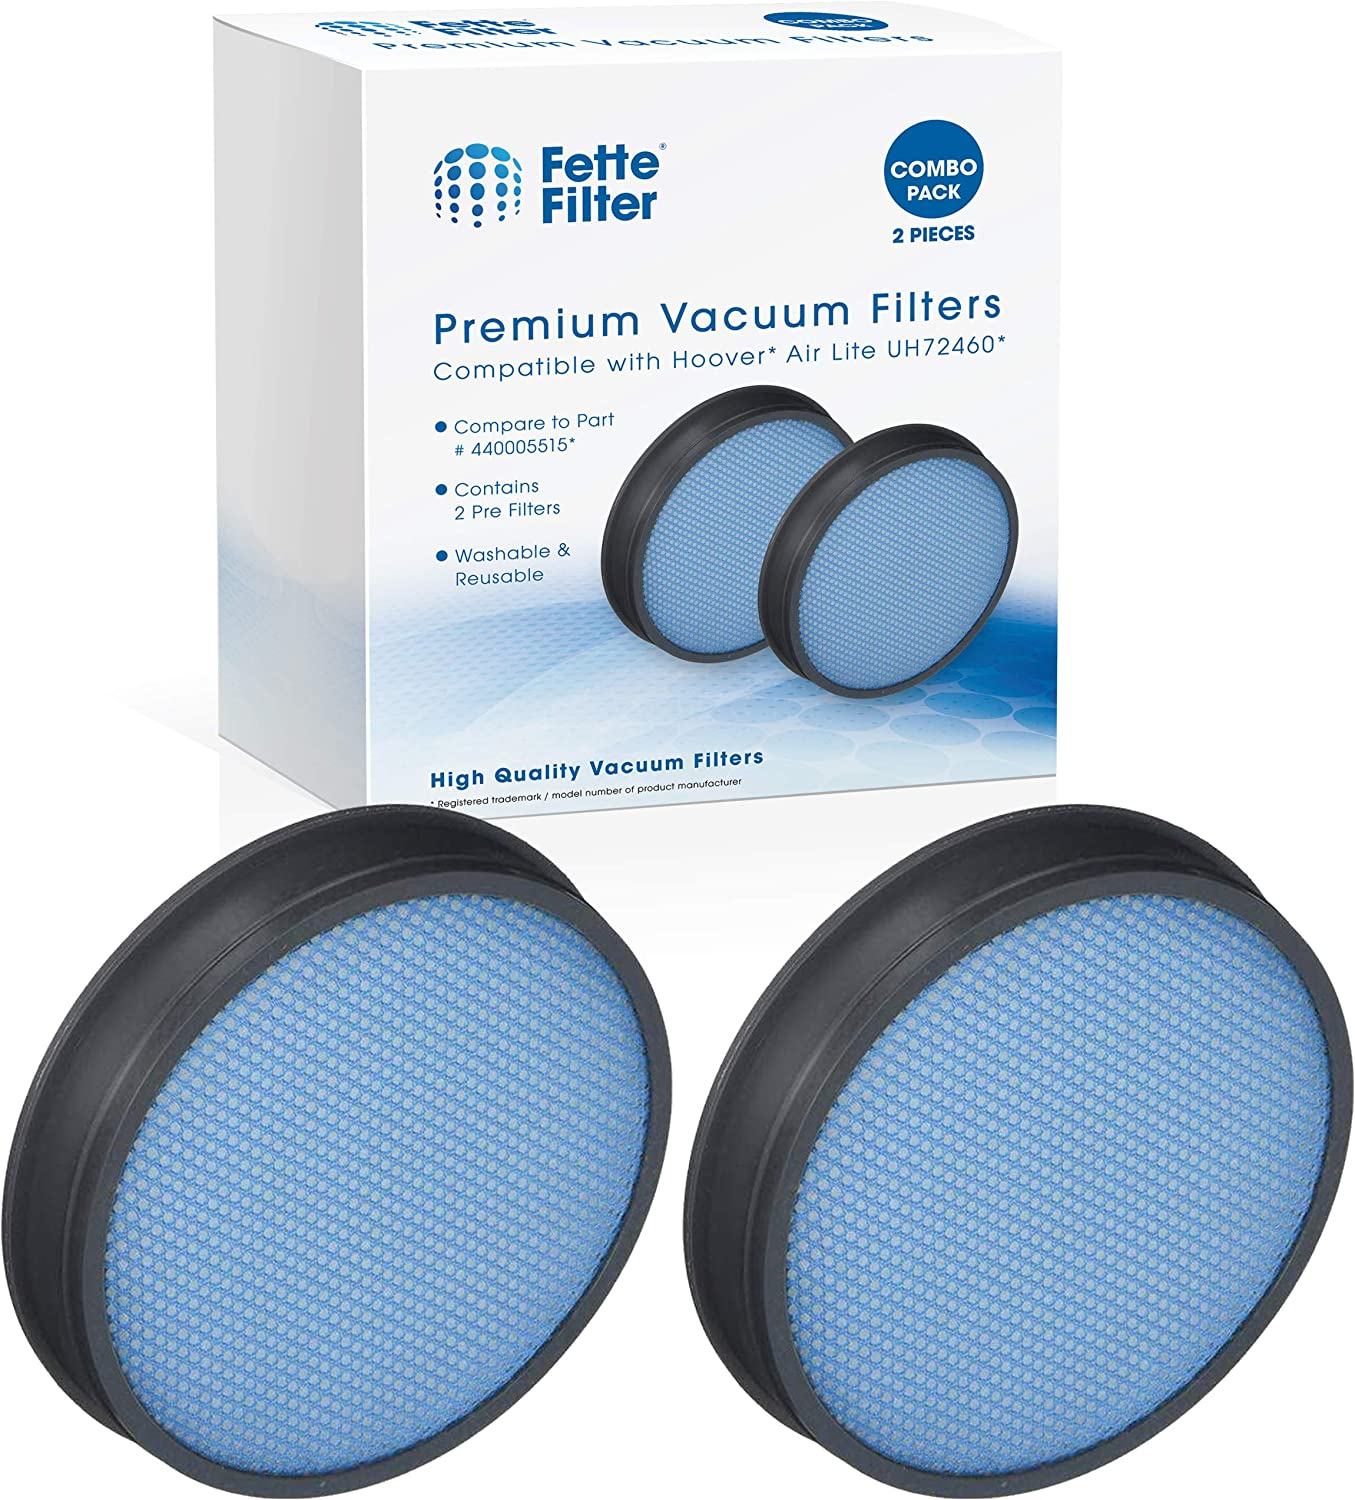 Fette FilterNEW Vacuum Filter Compatible with Hoover. Compare to Part #440005515. Pack of 2